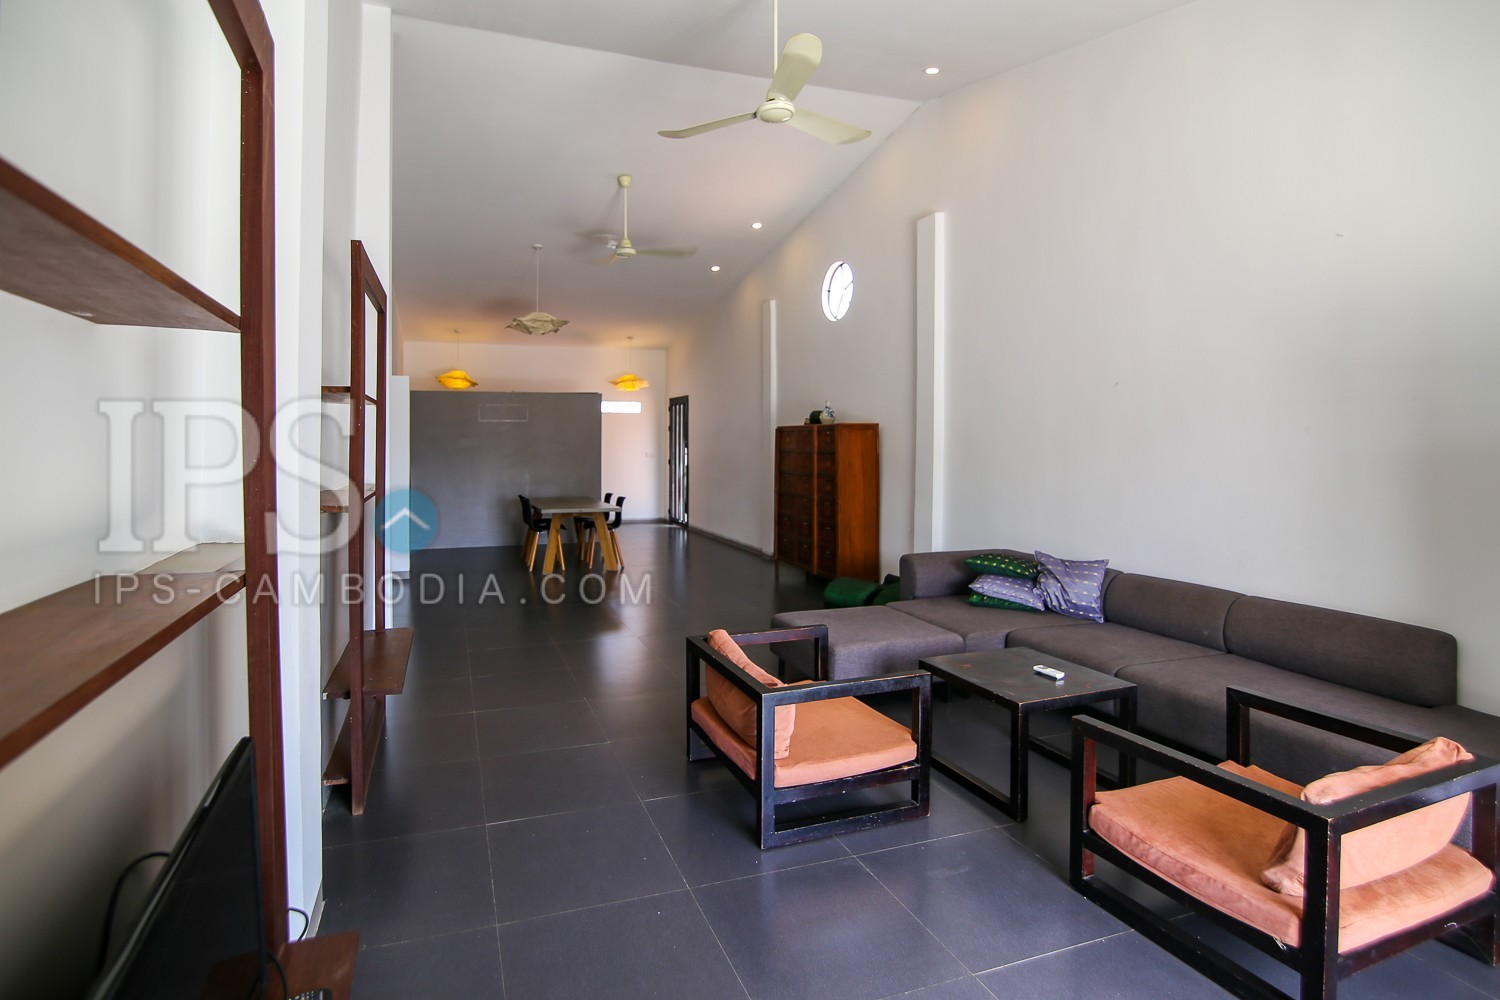 3 Bedroom Apartment For Sale - Monorom, Phnom Penh